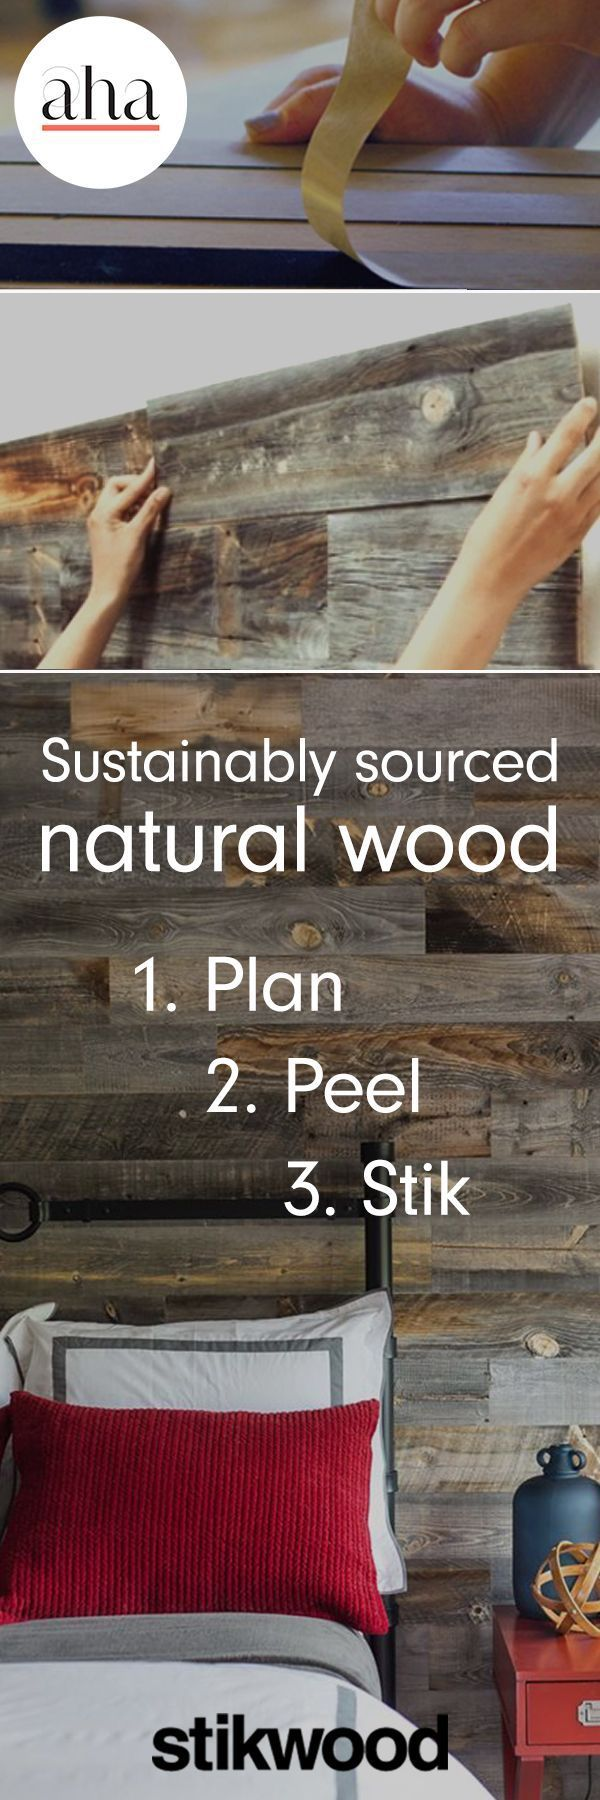 Love this stuff: Stikwood is the world's first peel and stick solid wood planking from reclaimed, sustainably sourced natural wood. Plan. Peel. Stik. Discover at AHAlife.